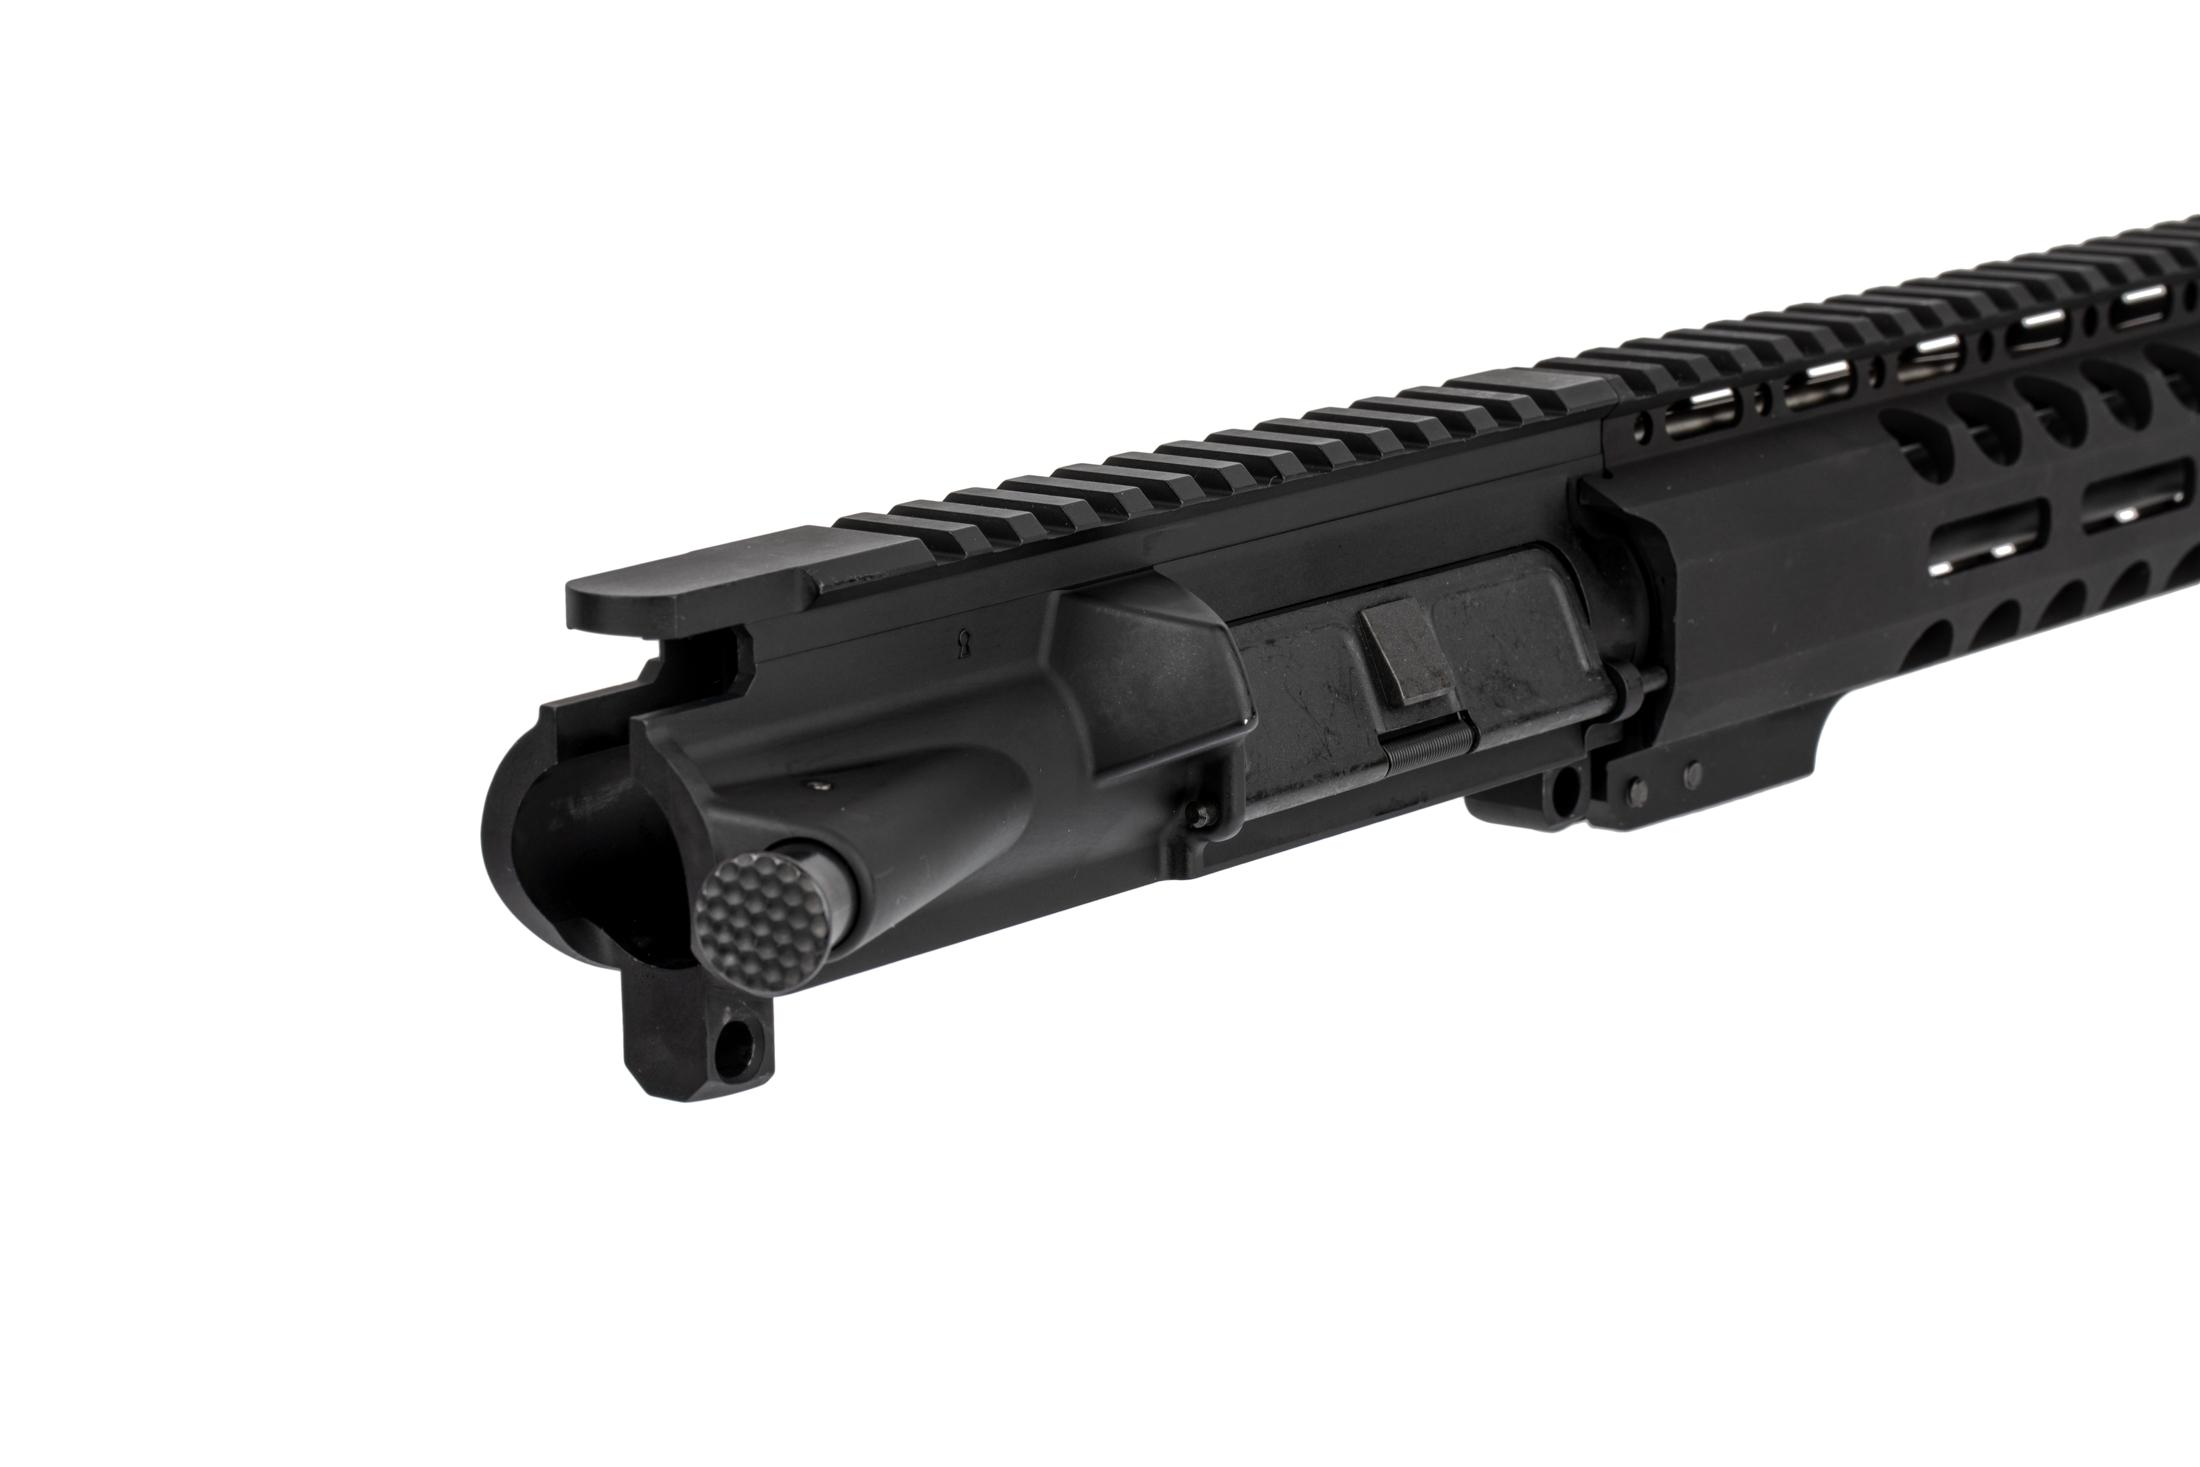 RF 16 5.56 NATO AR 15 barreled upper receiver with 15in PA exclusive M-LOK Rail does not include bolt carrier group or charging handle